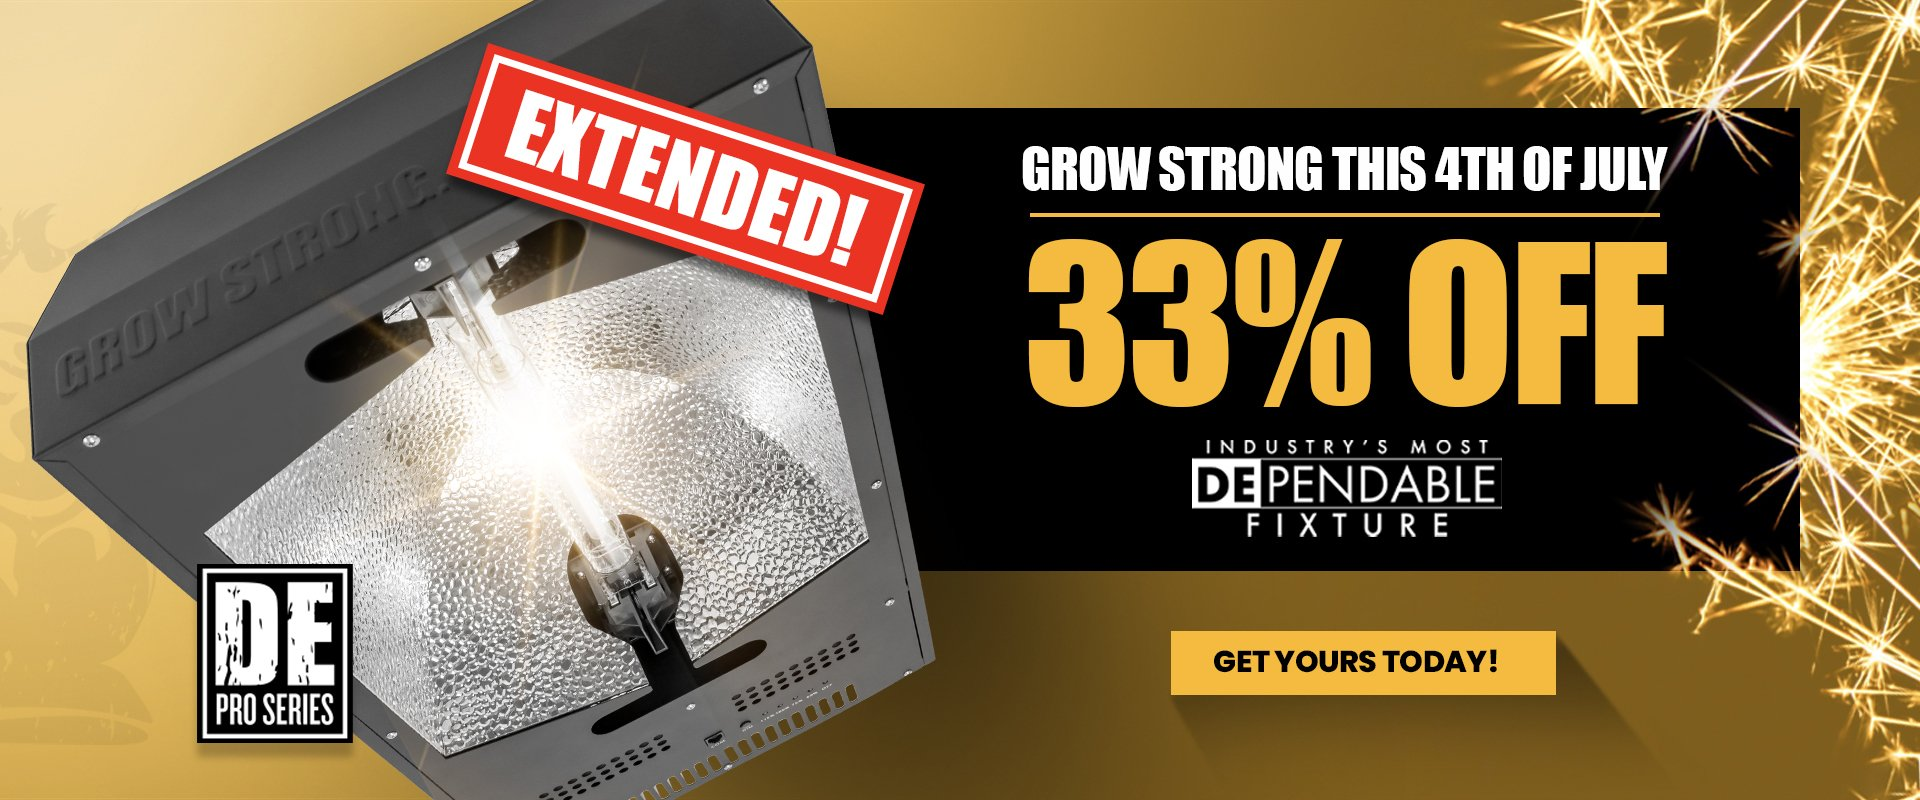 Visit SuperCloset for Complete Grow Systems